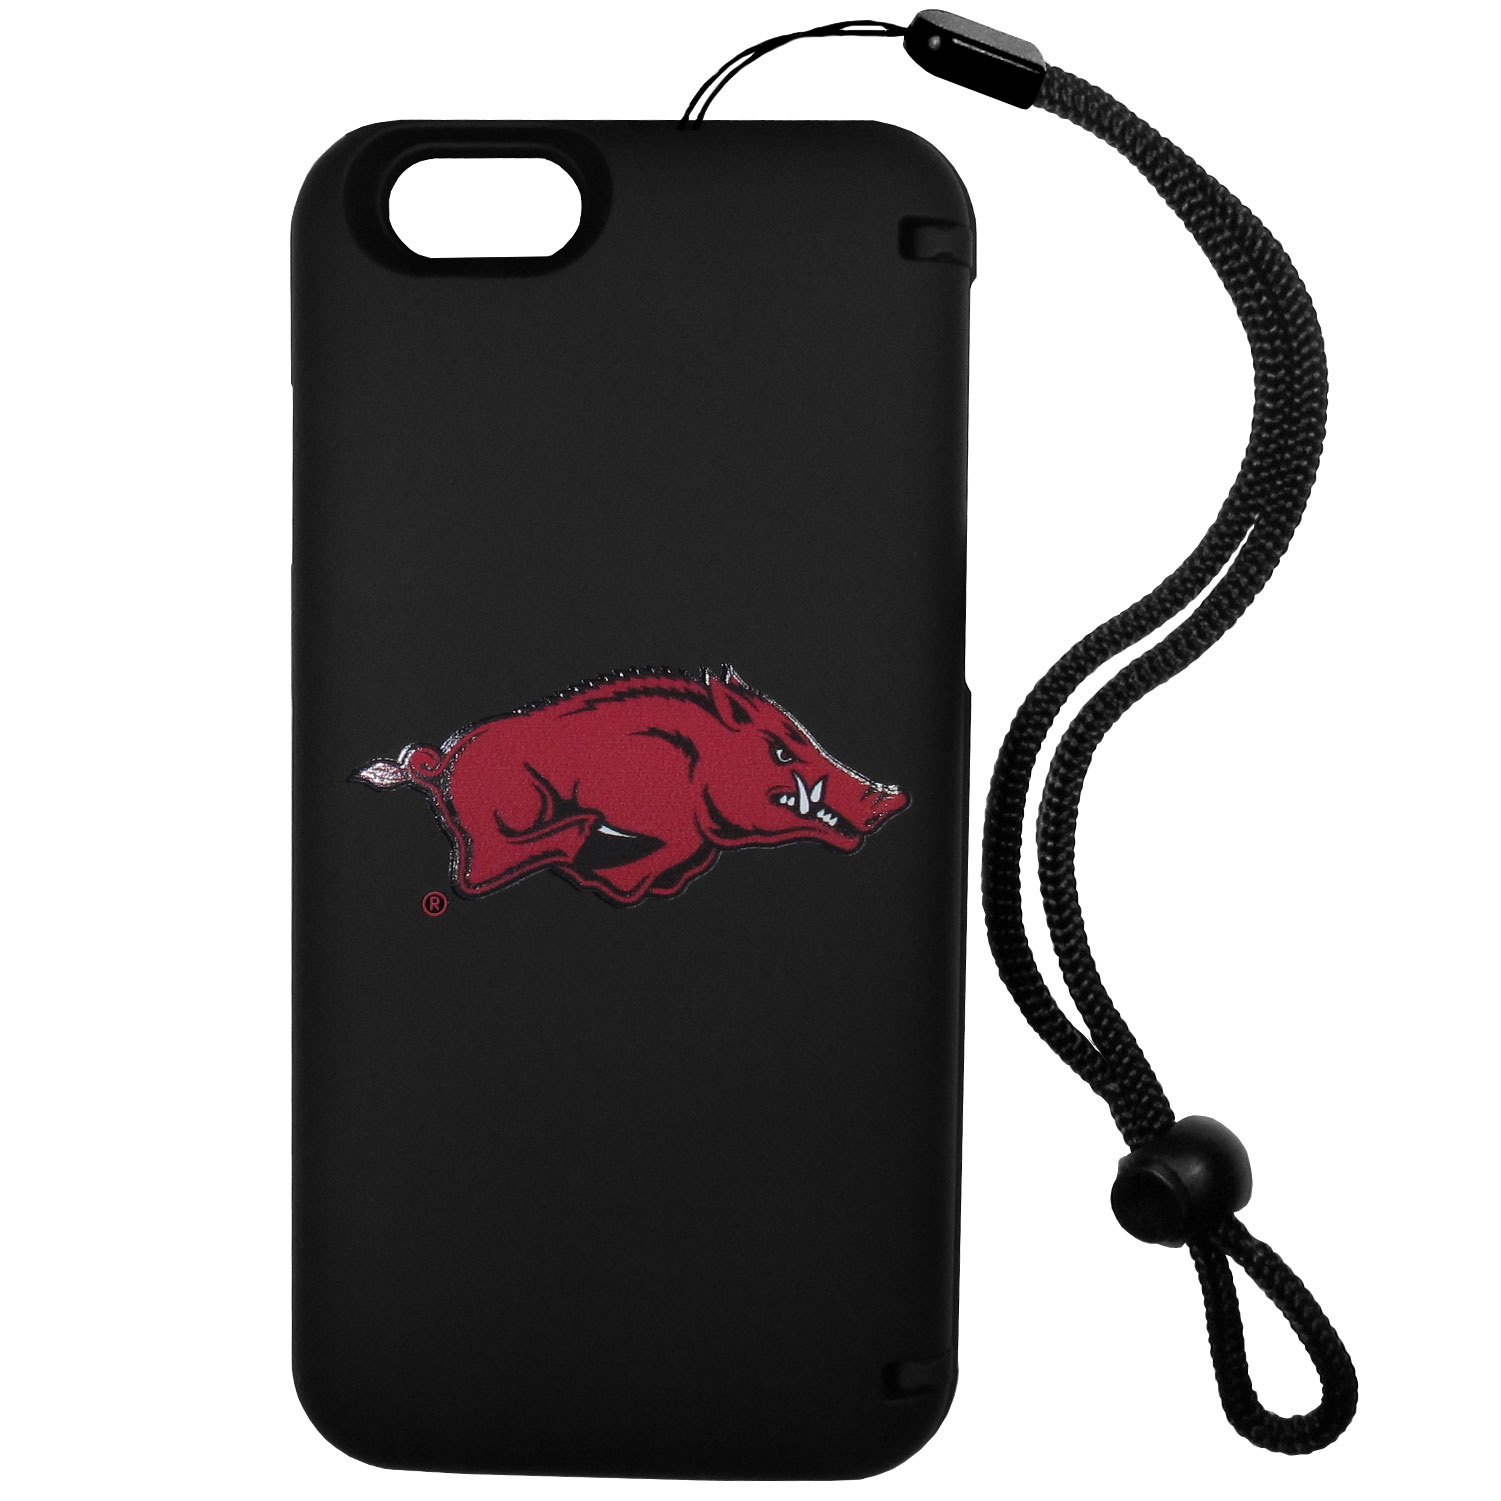 Arkansas Razorbacks iPhone 6 Everything Case - This case really does have everything but the kitchen sink! The hidden compartment lets you keep your cards, money and tickets to the big game safe and secure and has a compact mirror so you can make sure your game face is ready to go. It also comes with a kickstand to make chatting and watching videos a breeze. The wrist strap allows you to travel with ease with your everything case. If that's not enough, it also comes with the Arkansas Razorbacks logo printed in expert detail on the front.